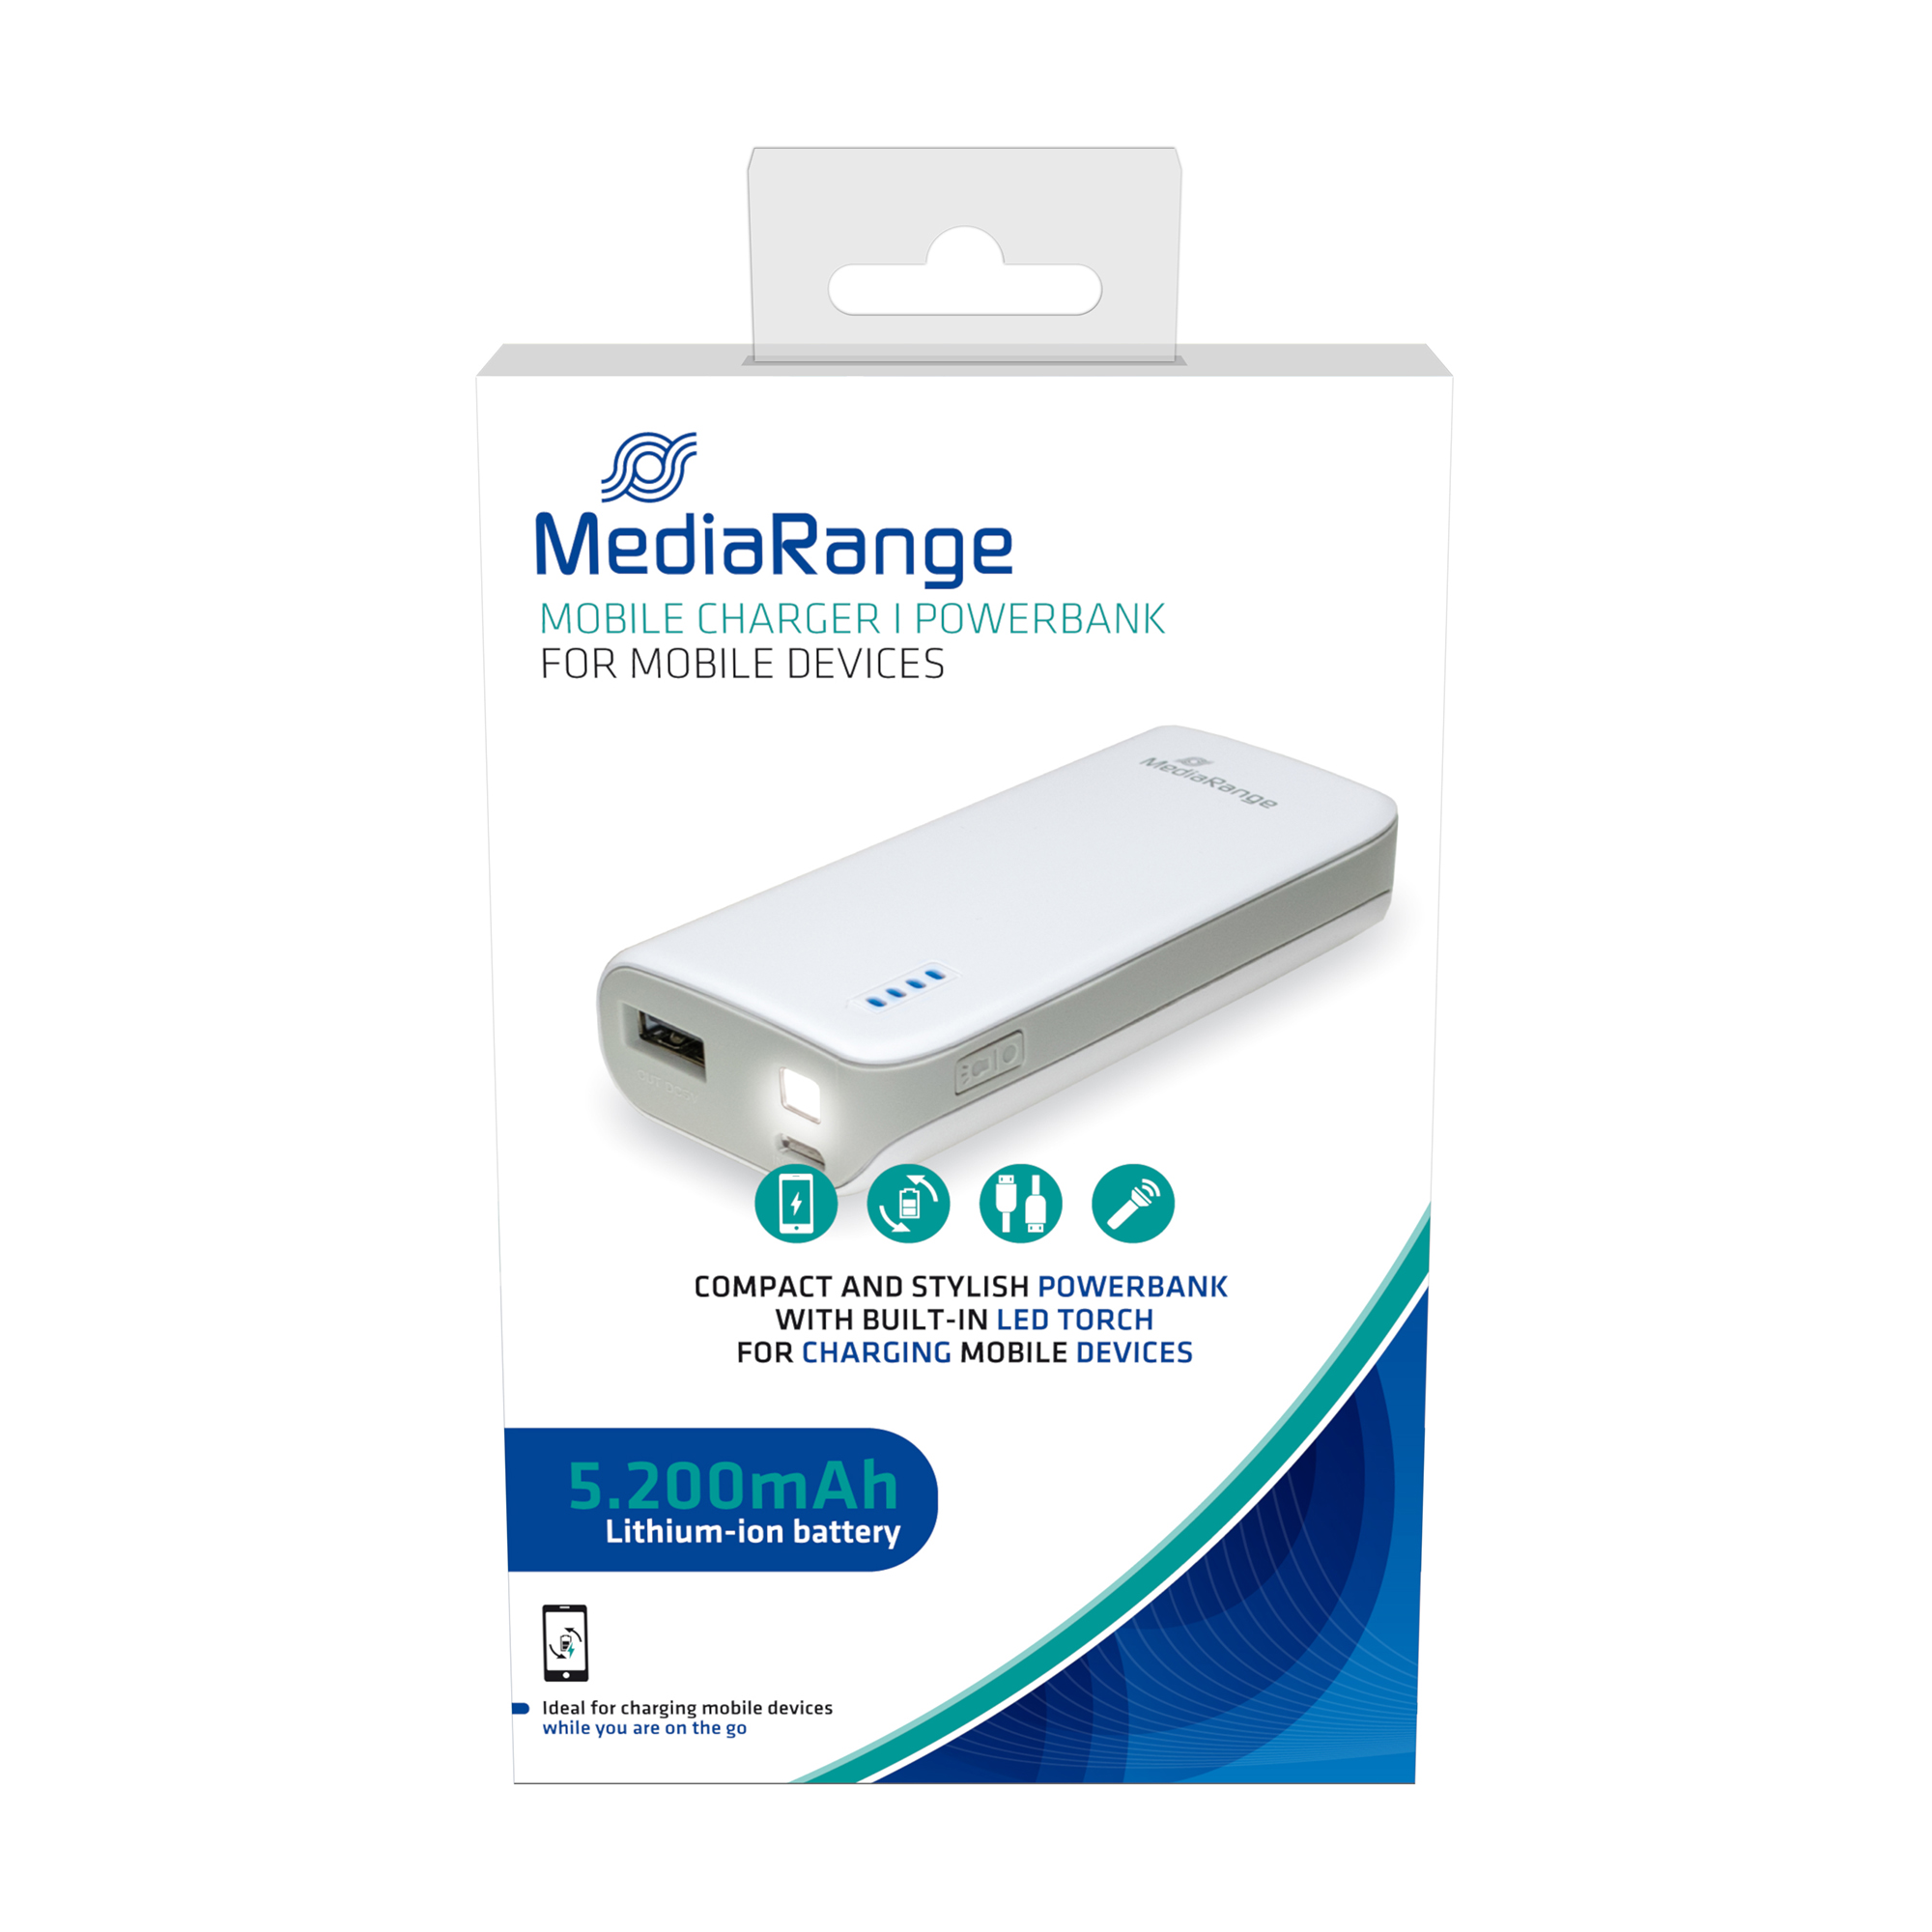 MediaRange Powerbank With Built-in LED Torch 5200 mAh Ref MR751